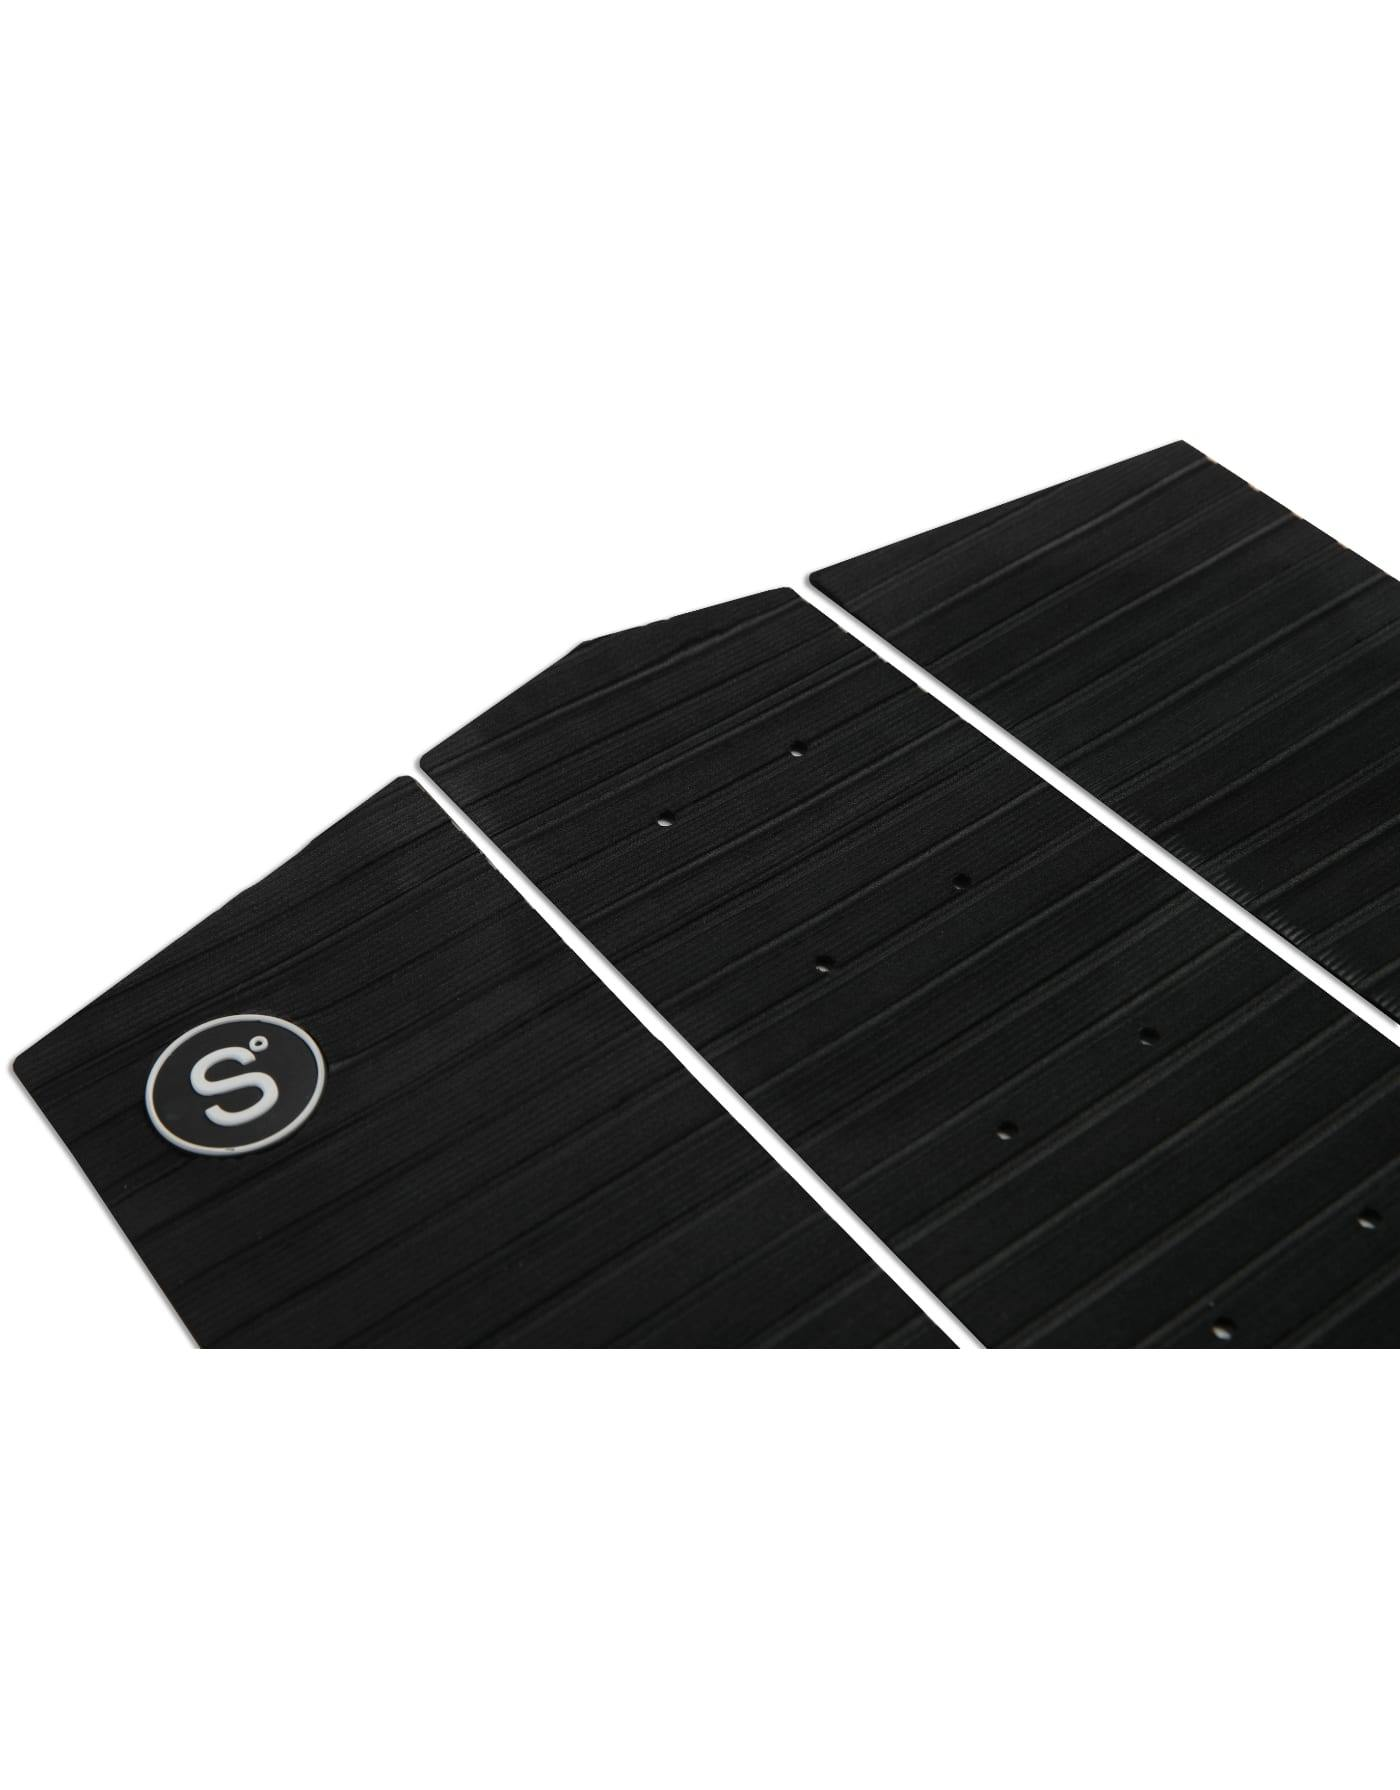 N°7 Sympl Front Traction Pad